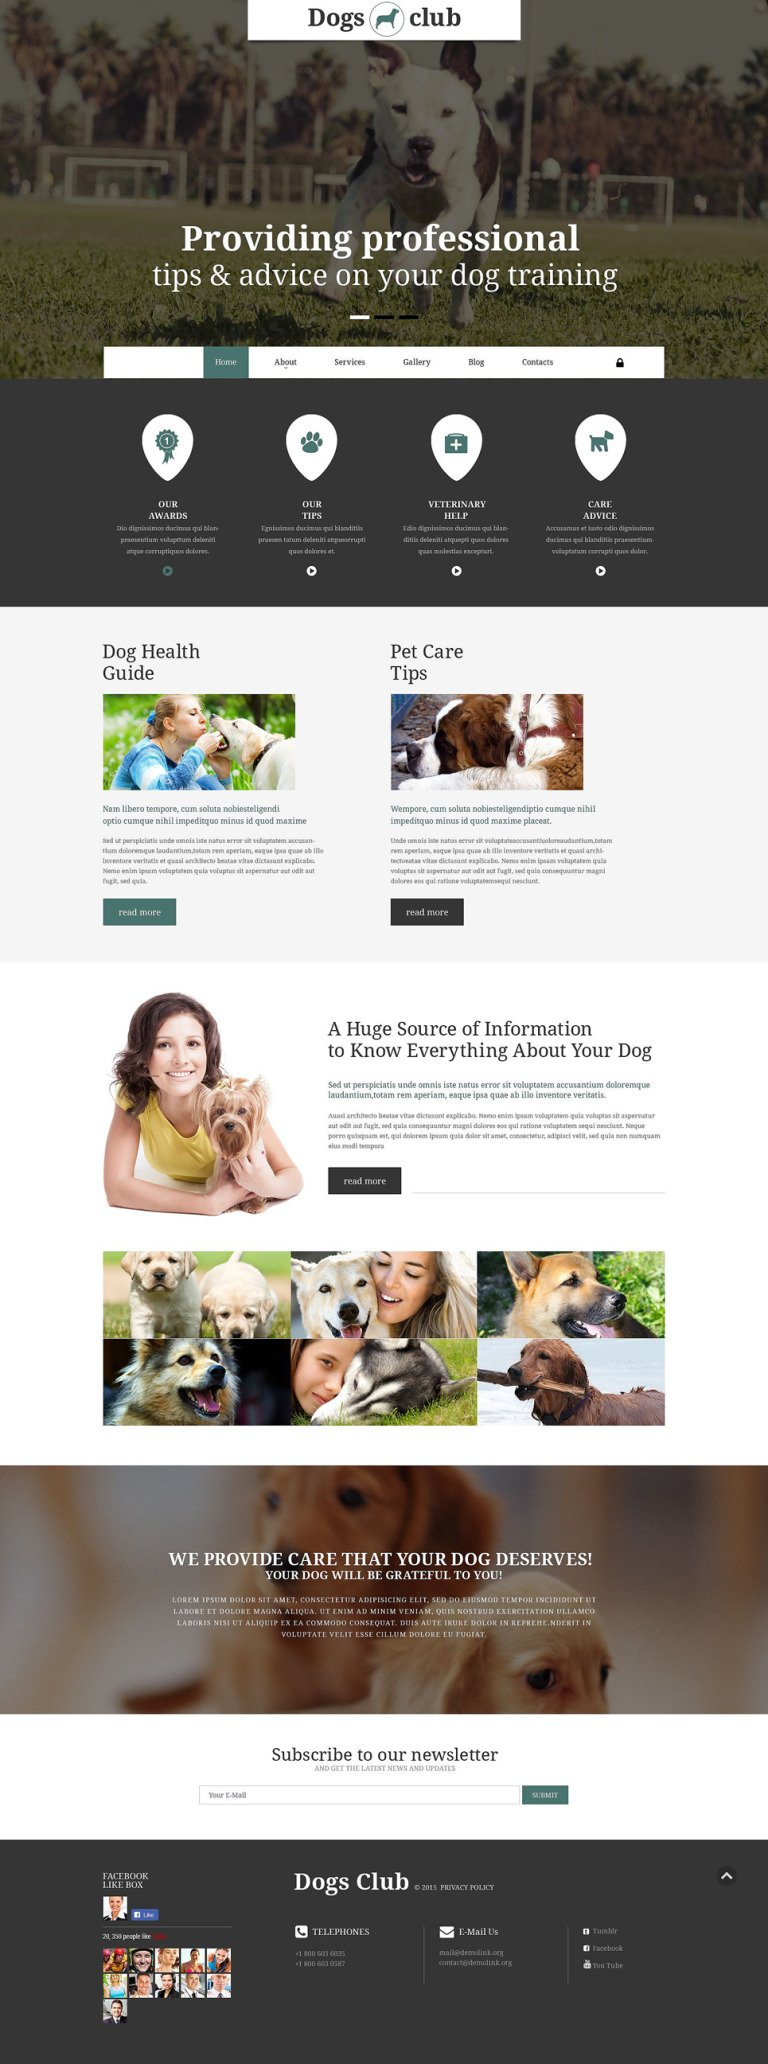 Dogs Club Joomla Template New Screenshots BIG